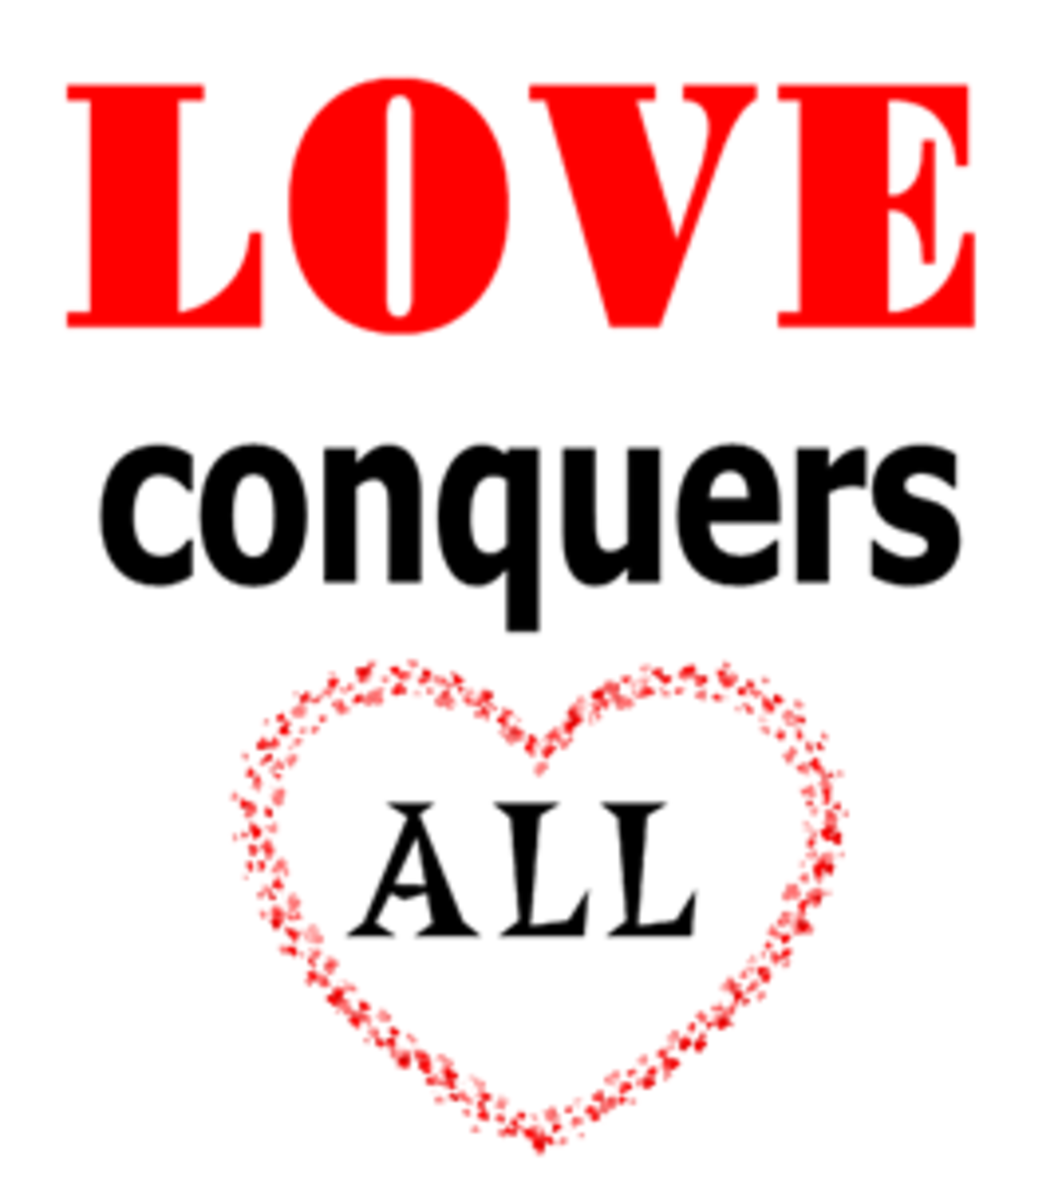 Love Conquers All Poster (created by author)